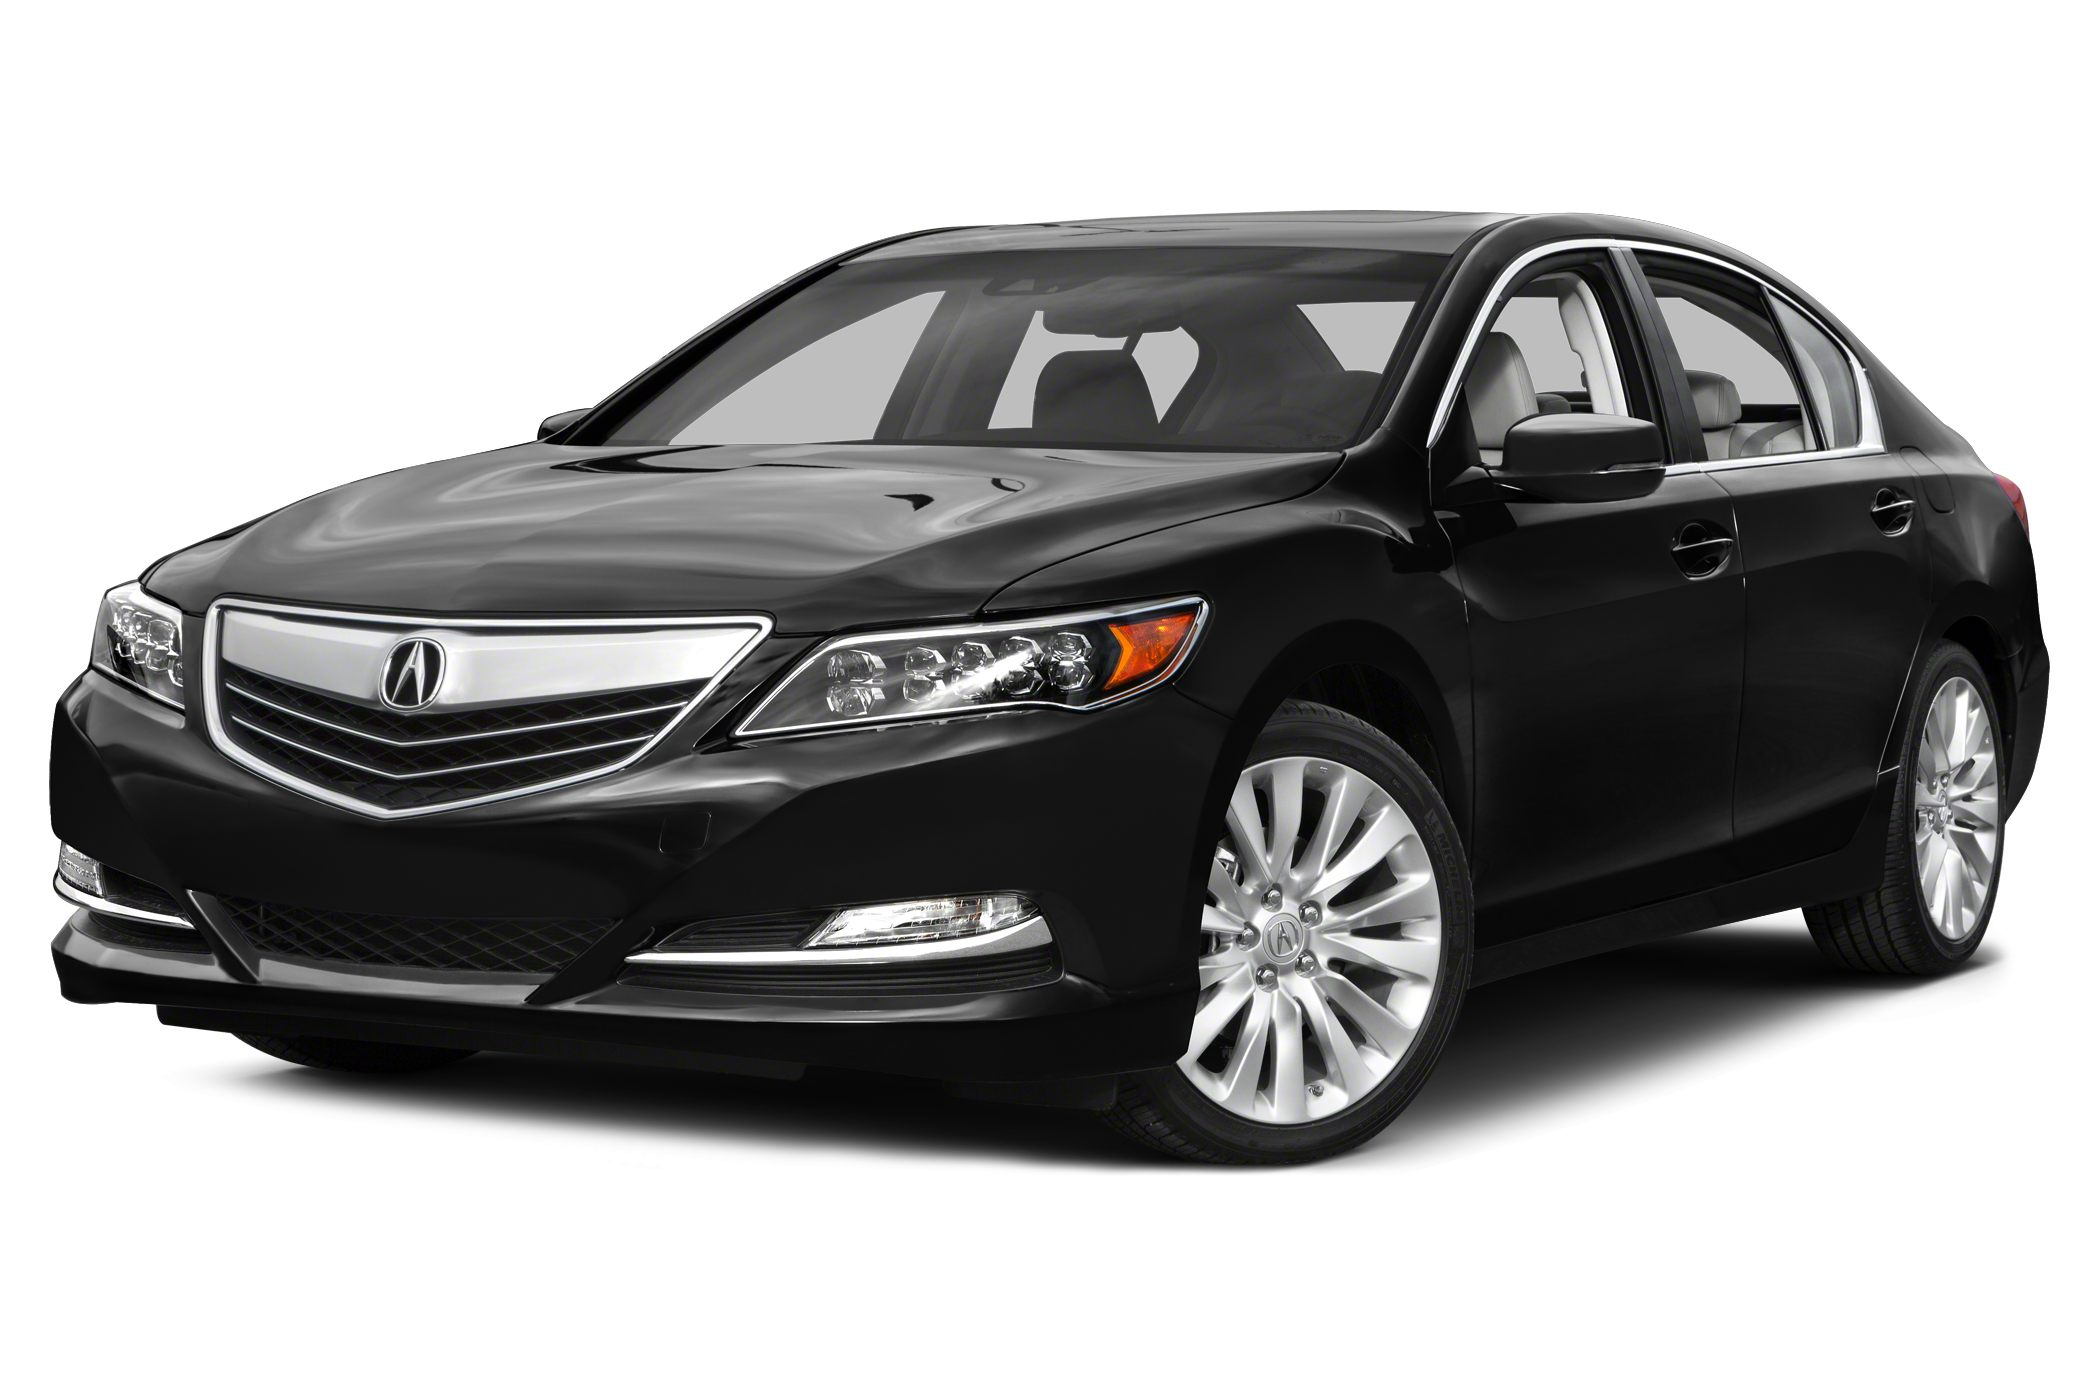 2015 Acura RLX Base Sedan for sale in East Brunswick for $55,345 with 0 miles.